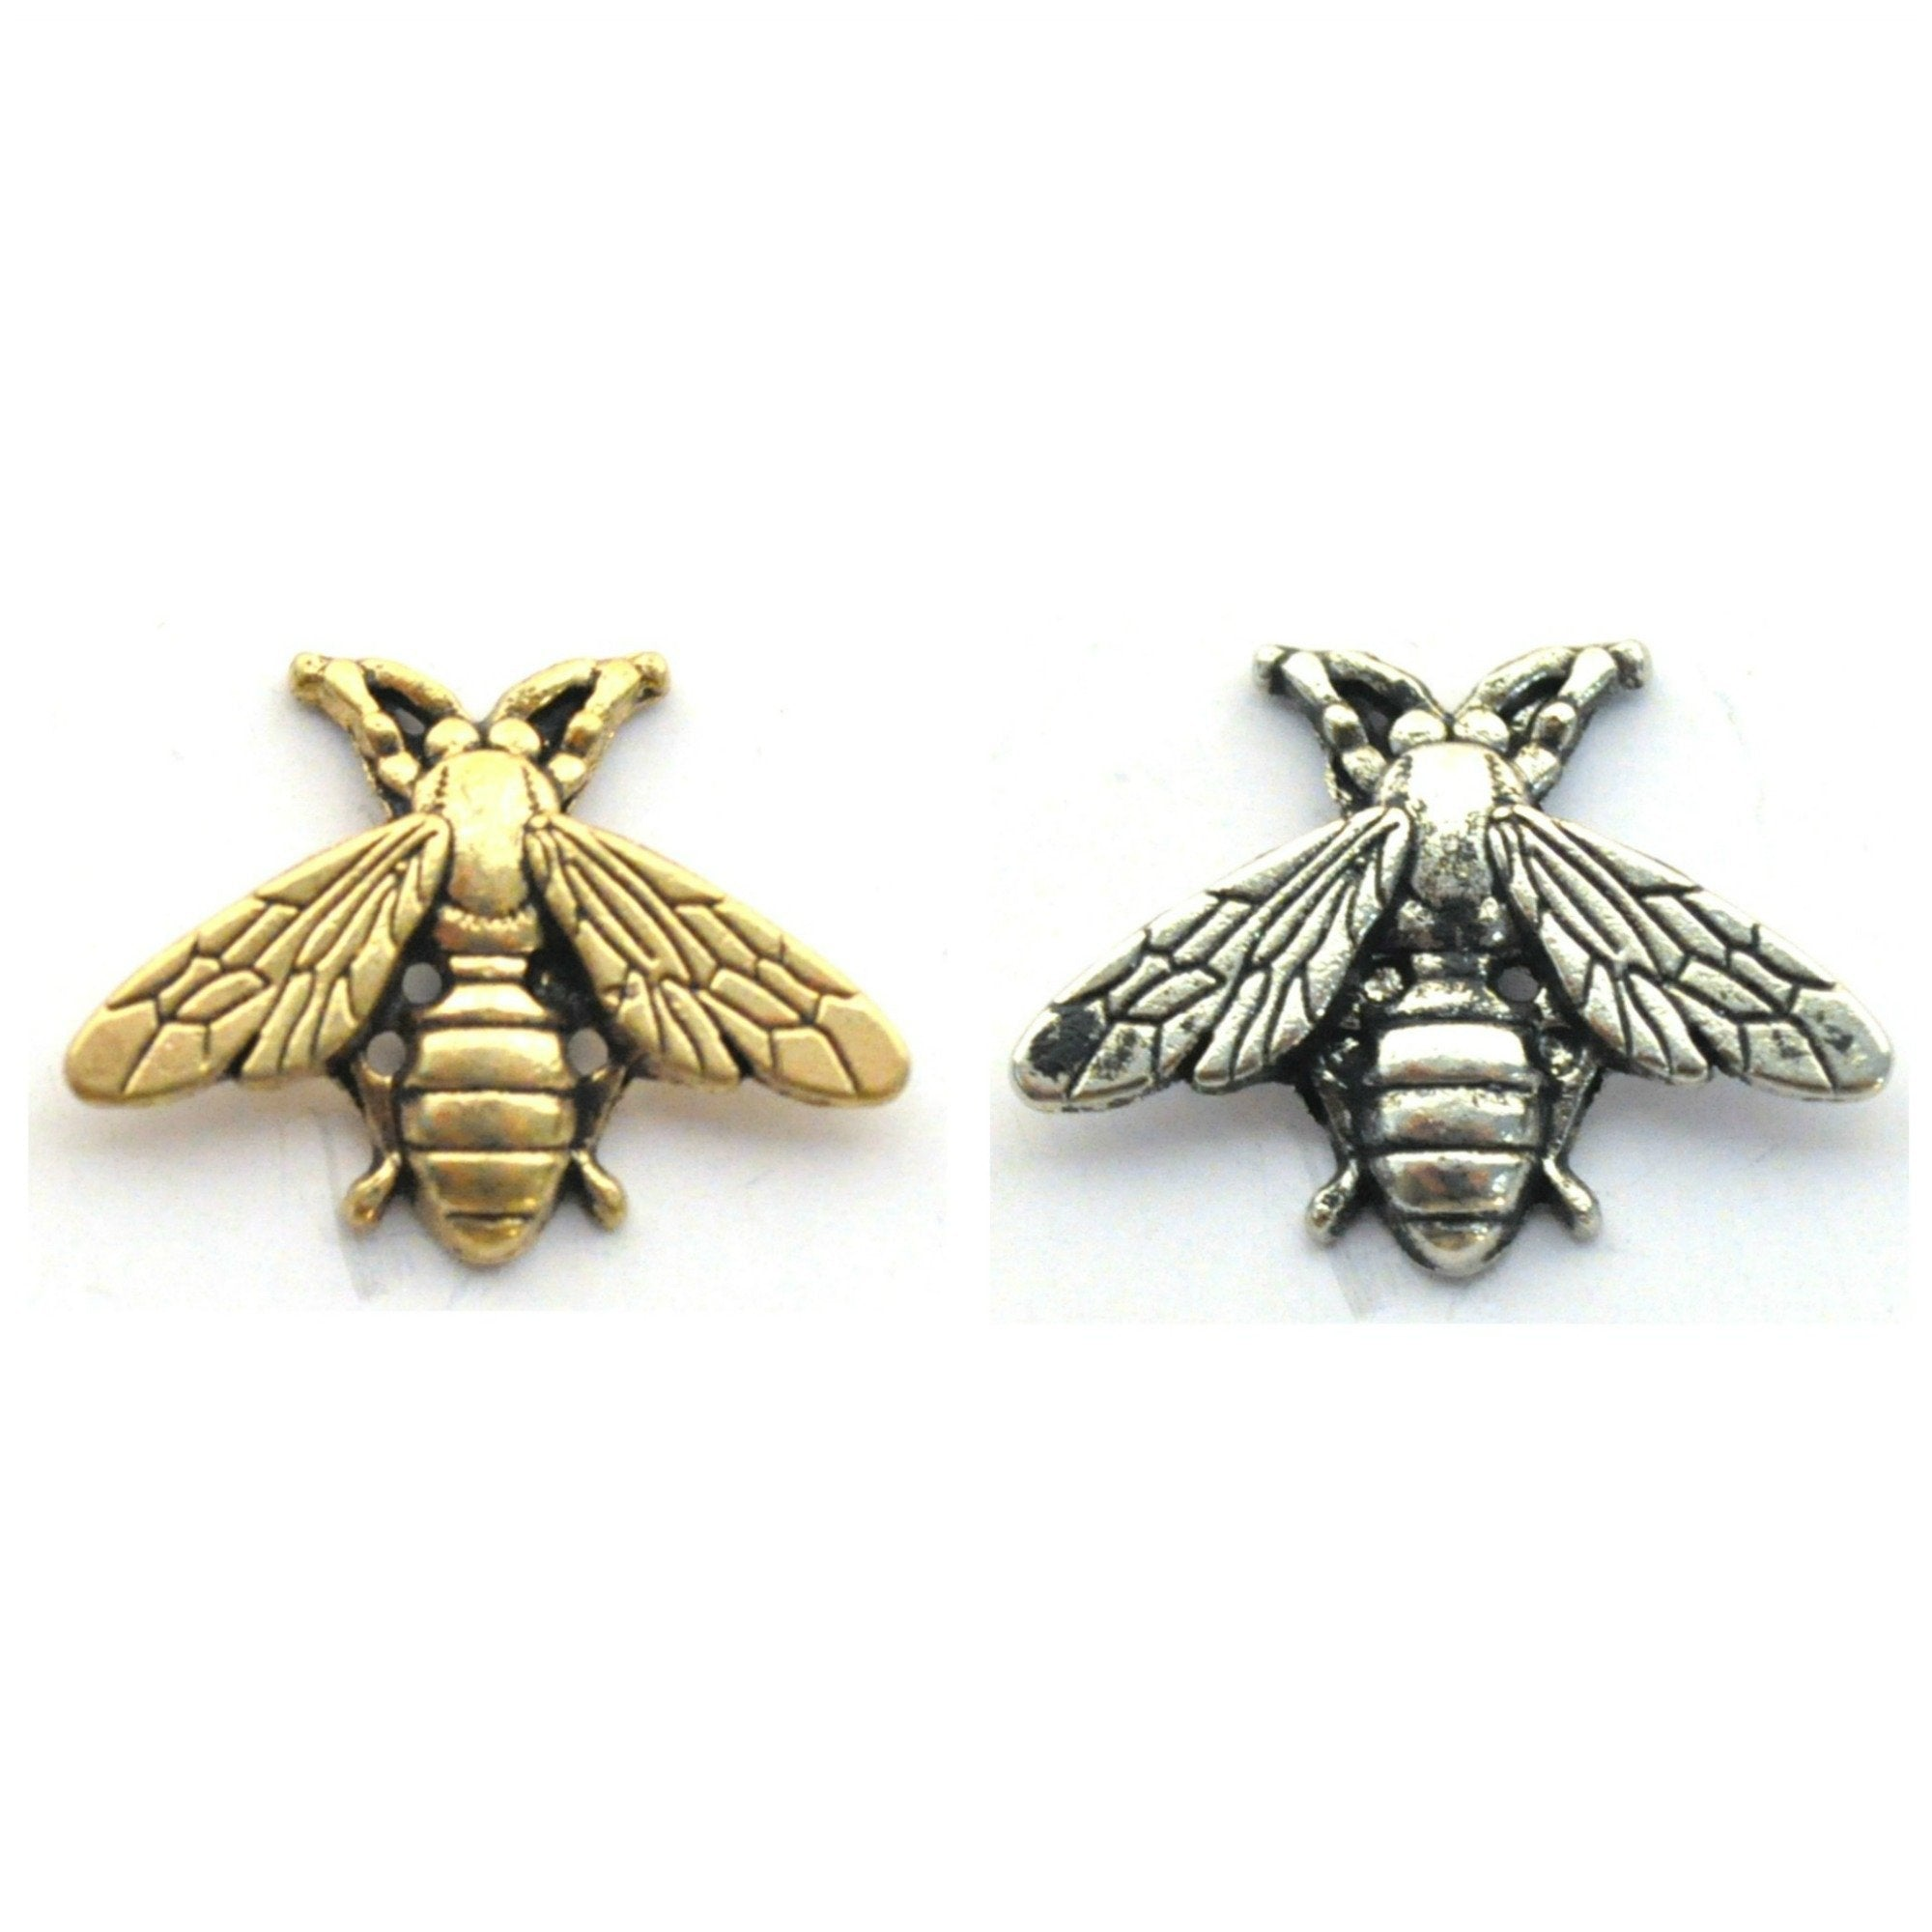 Worker Bee Metal Lapel Pin Badge - Minimum Mouse